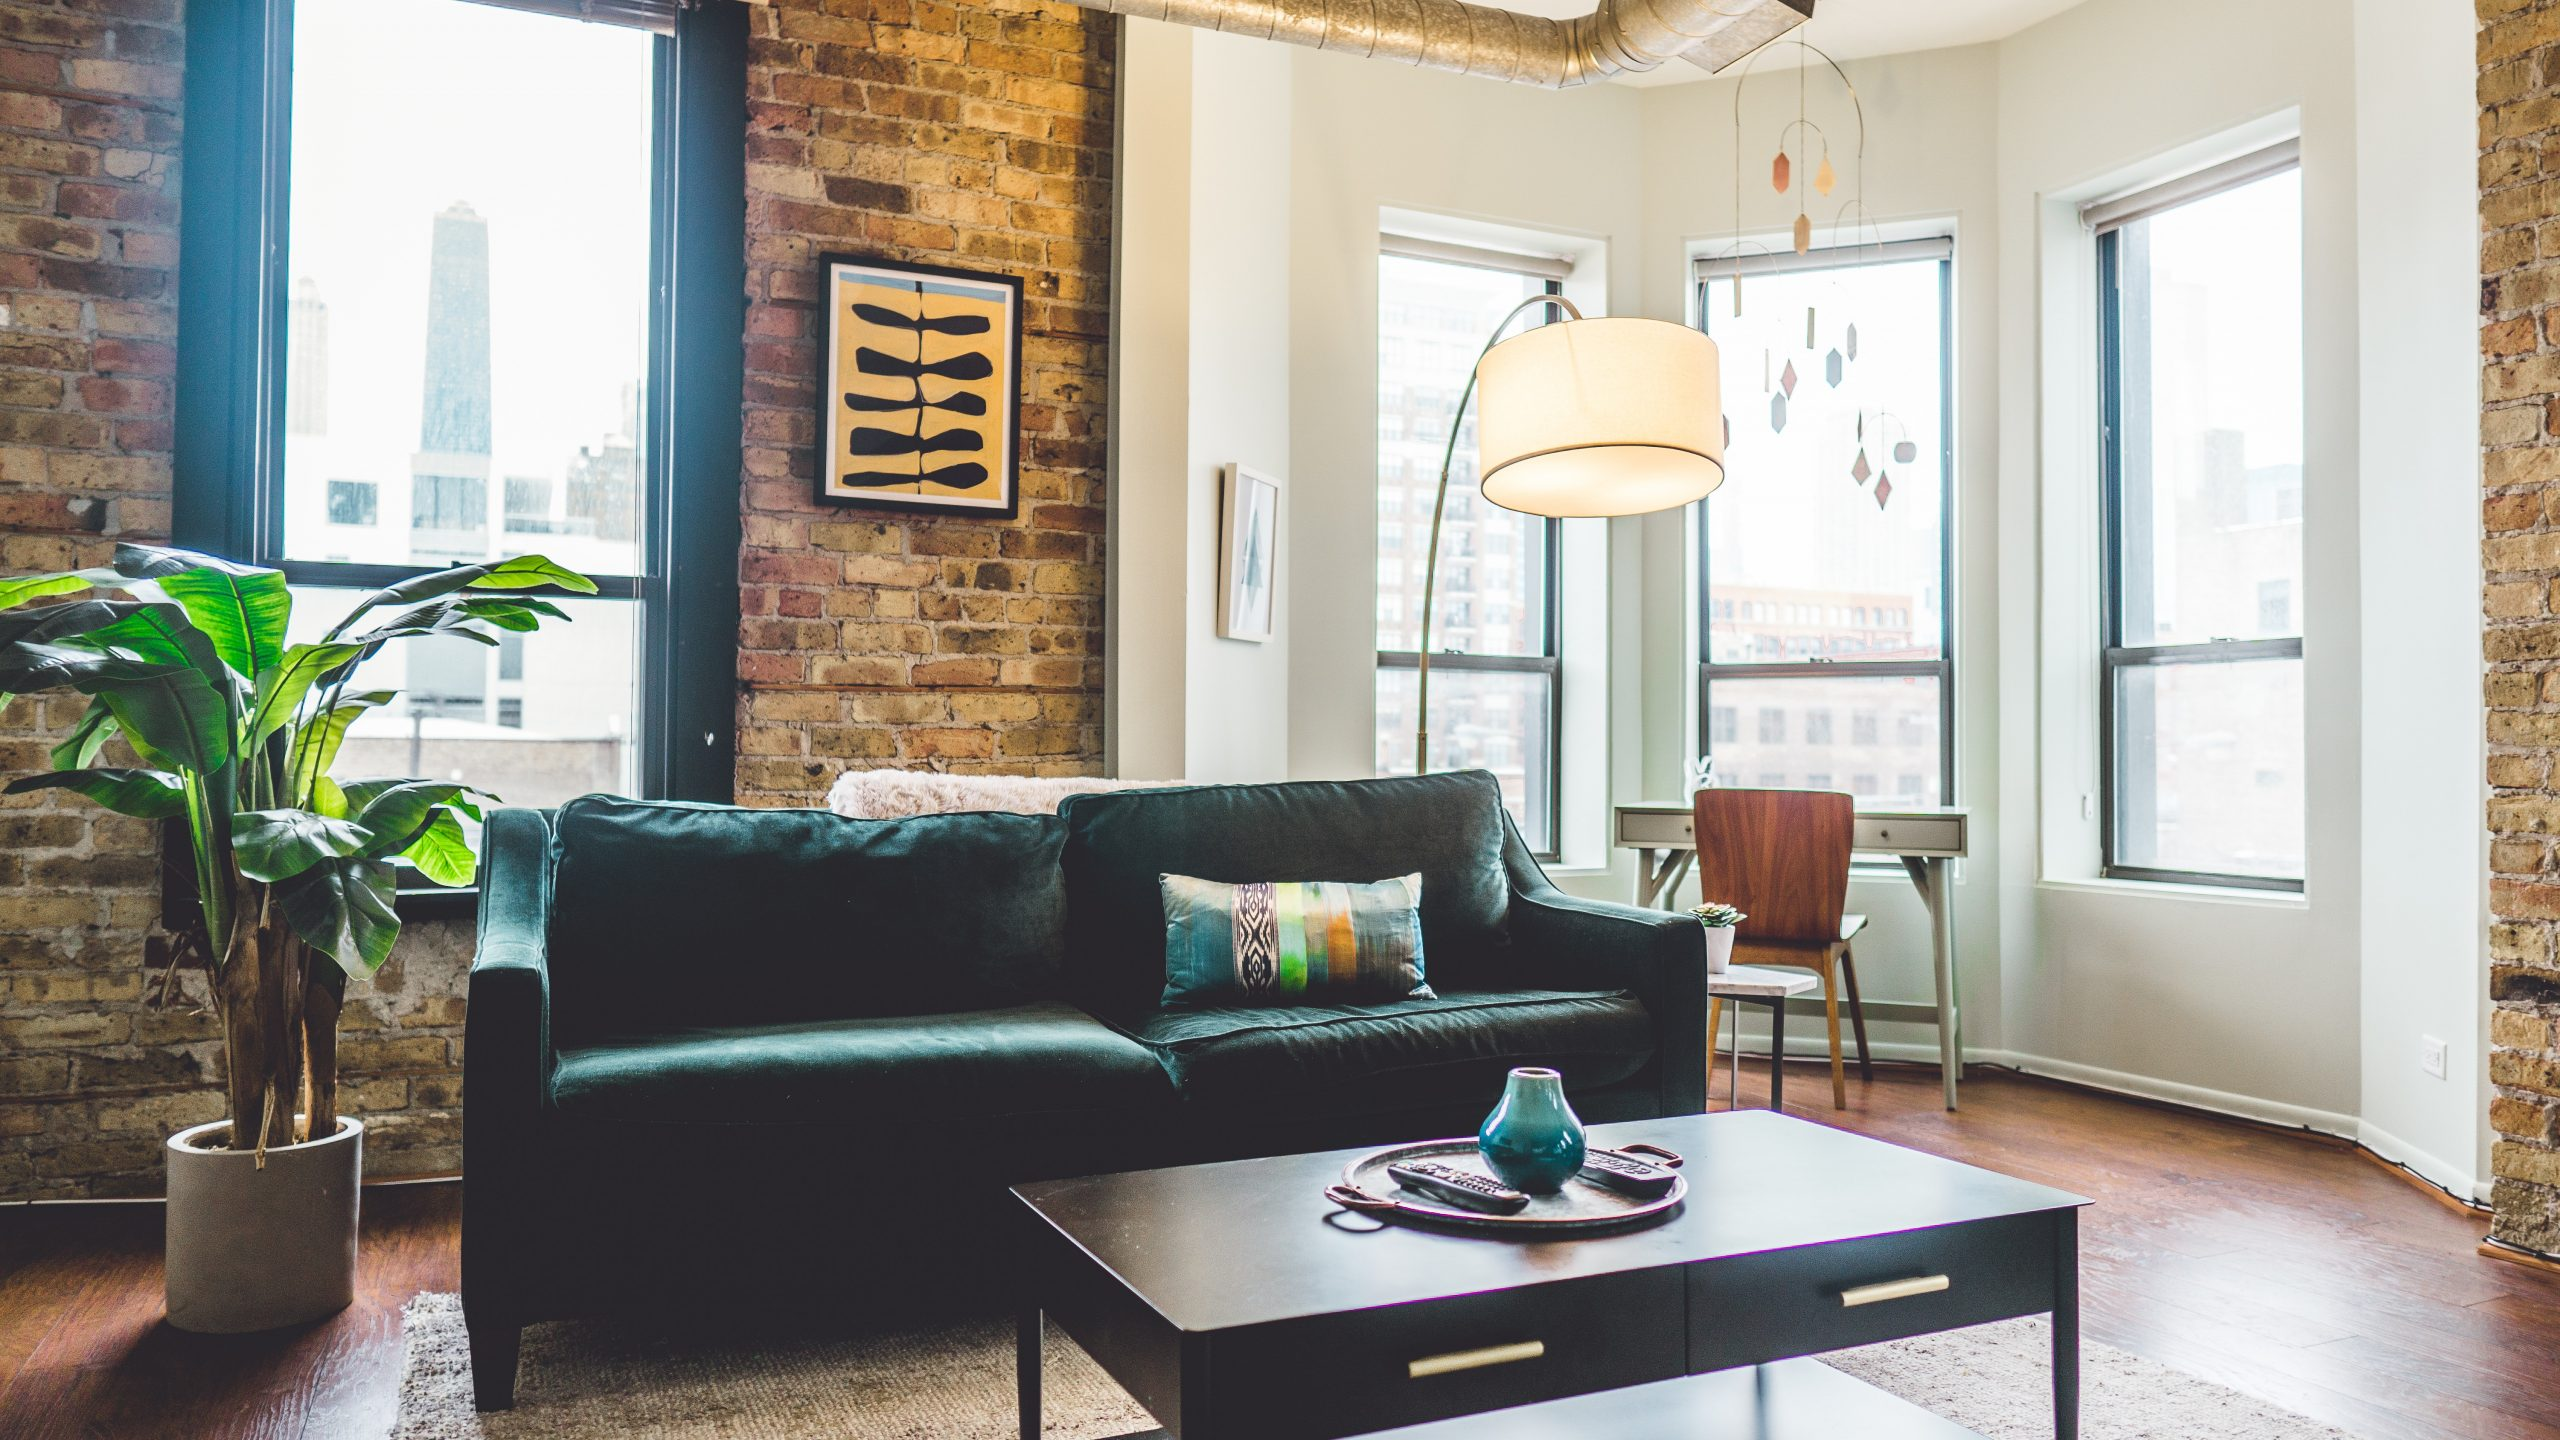 What to look for when renting your home this Summer